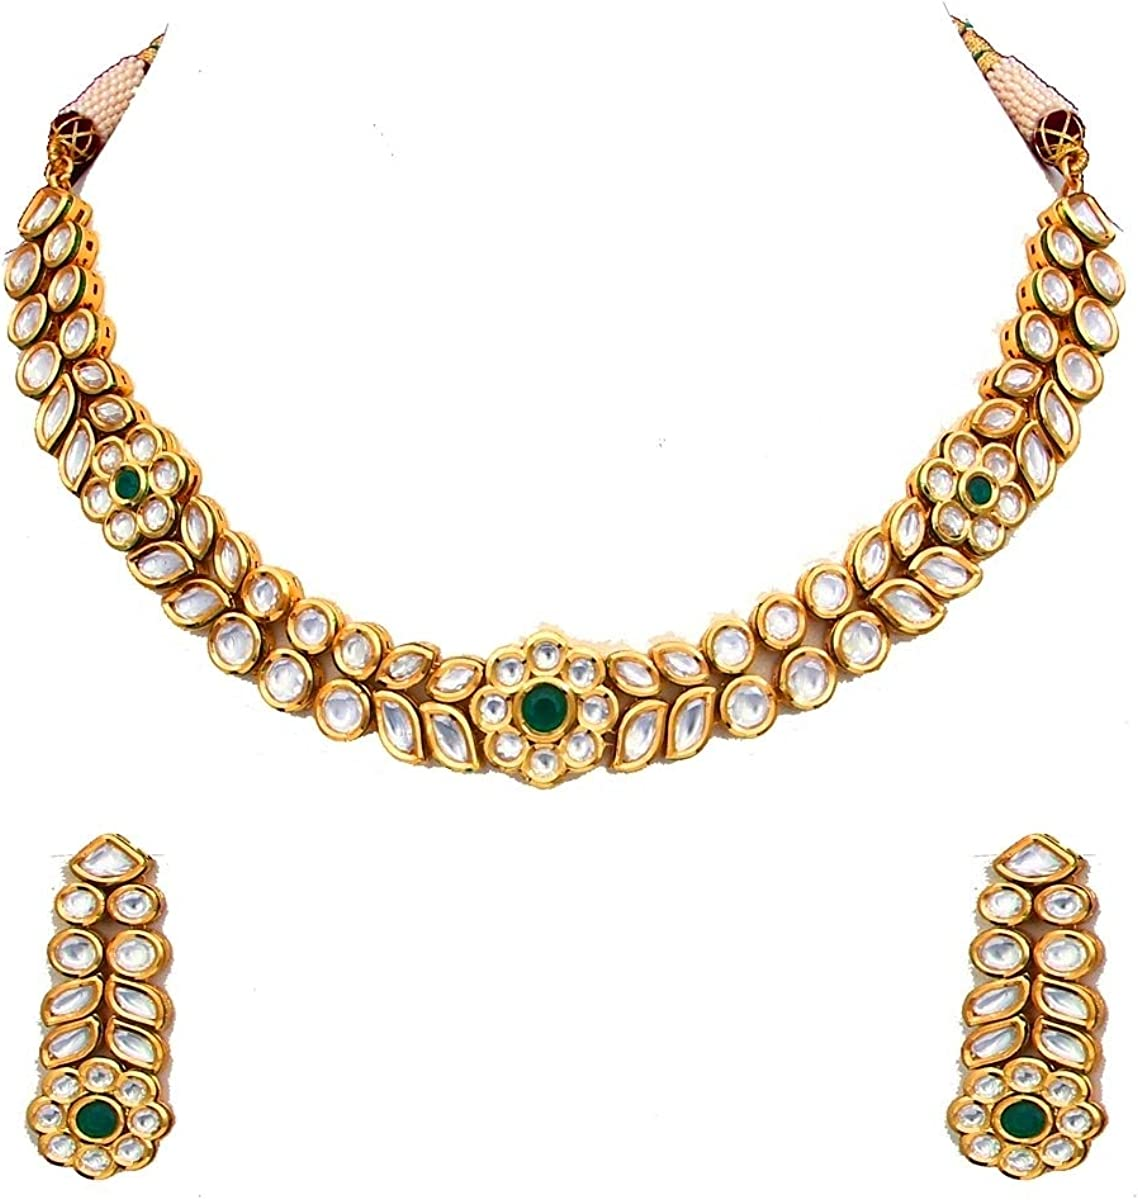 CaratYogi Gorgeous Necklace with Earrings Kundan Embellished 18K Gold Plated Handcrafted Designer Collection Indian Fashion Jewellery Set for Women Girls Ladies